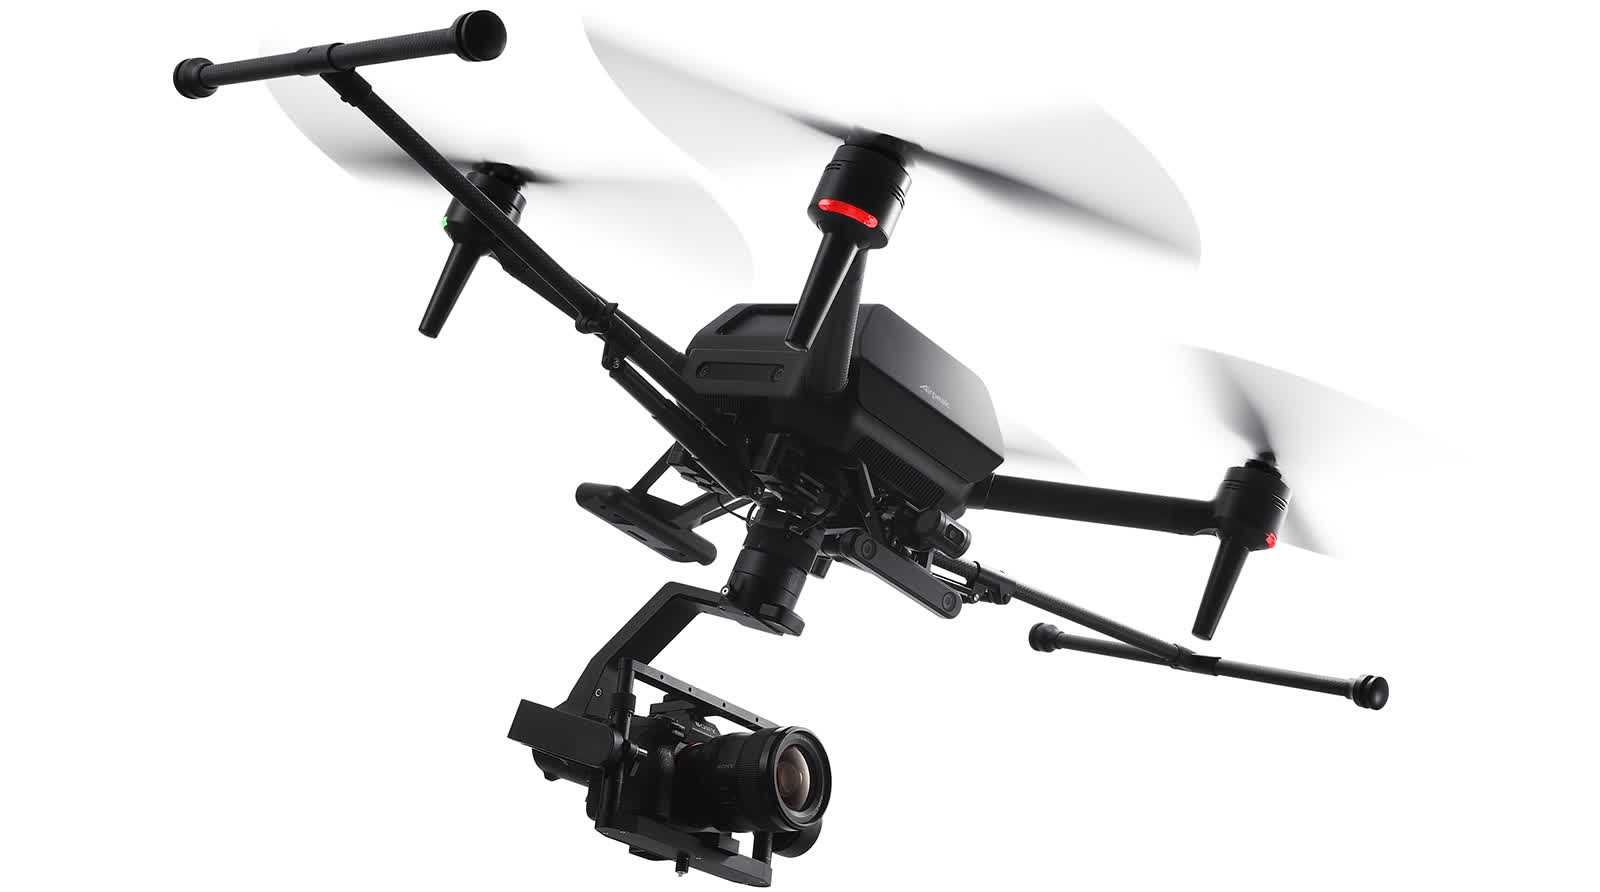 Sony formally announces the Airpeak S1, a pro-grade drone with a $9,000 price tag